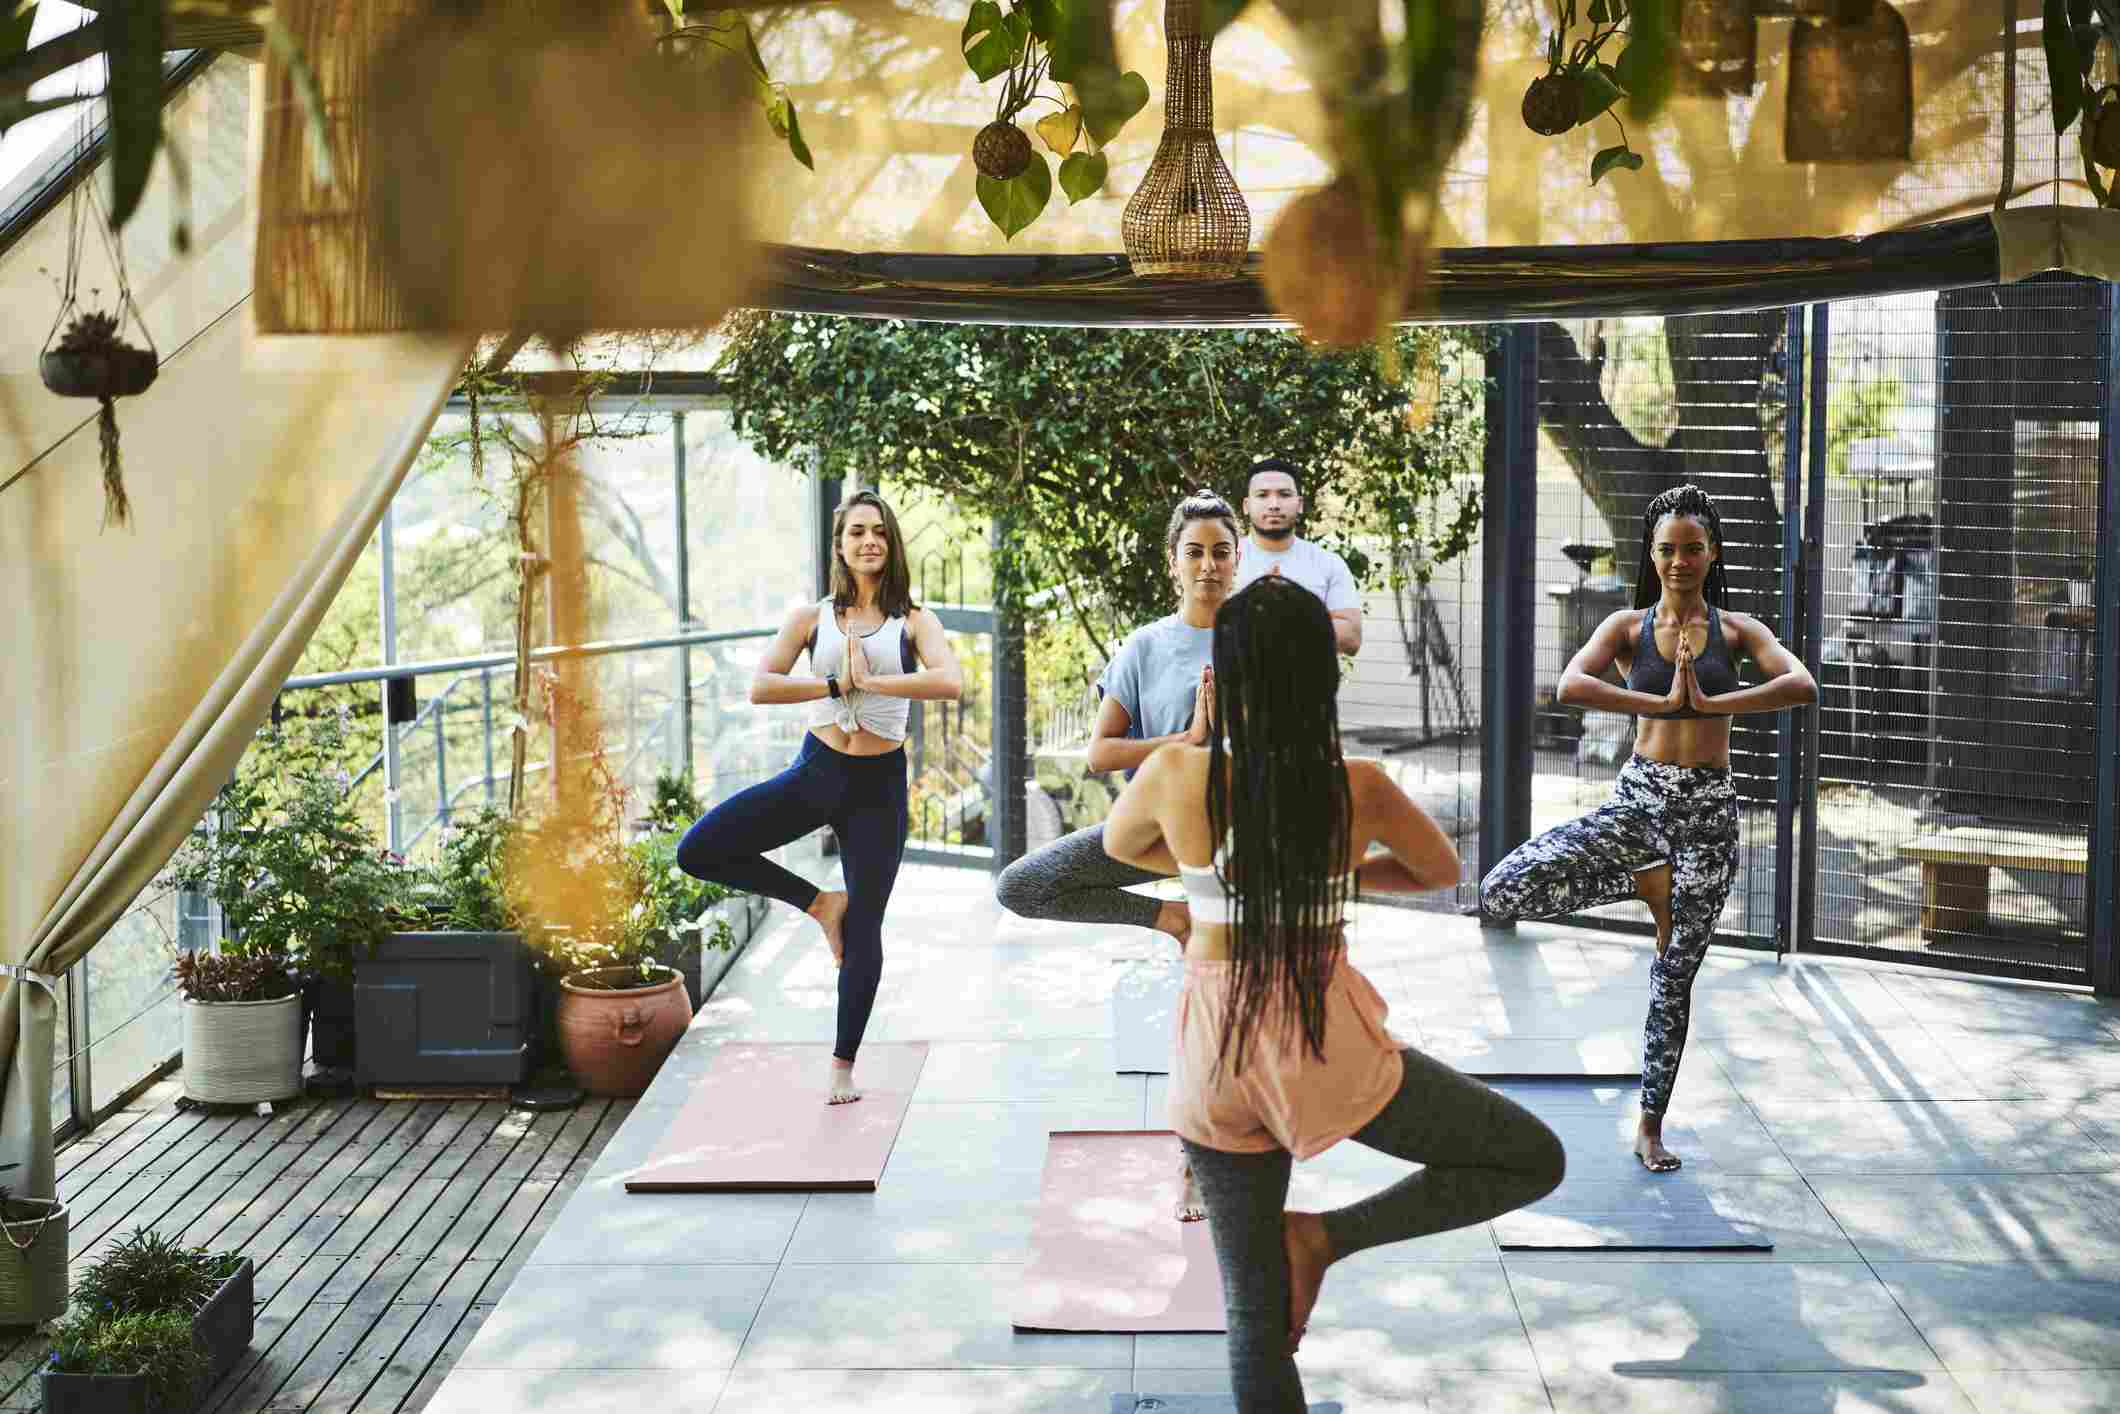 Instructor teaching tree pose to clients on porch